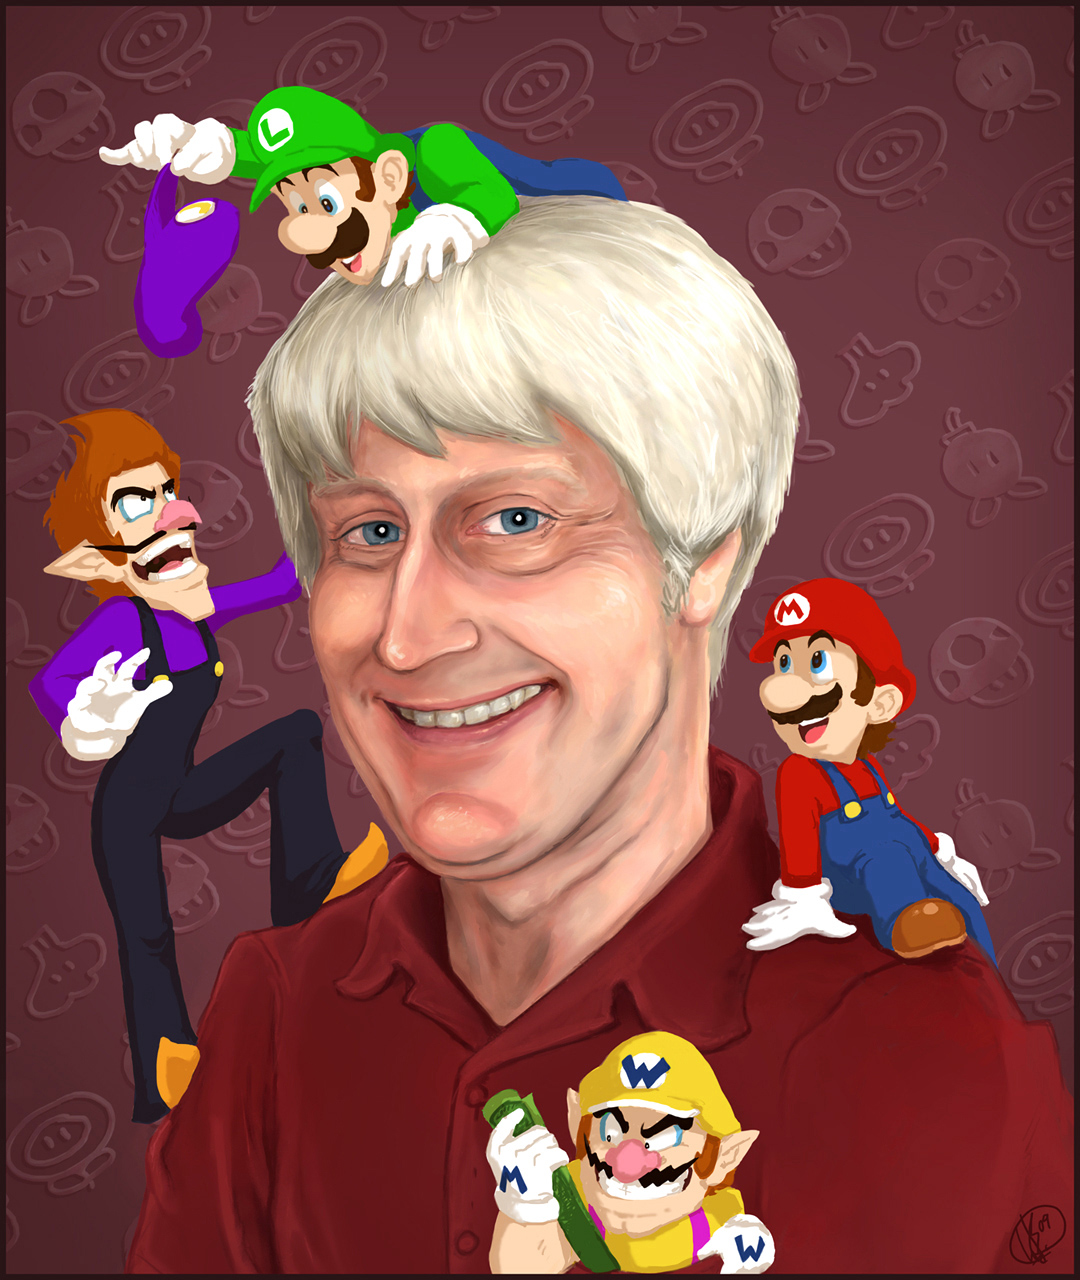 Charles Martinet Net Worth